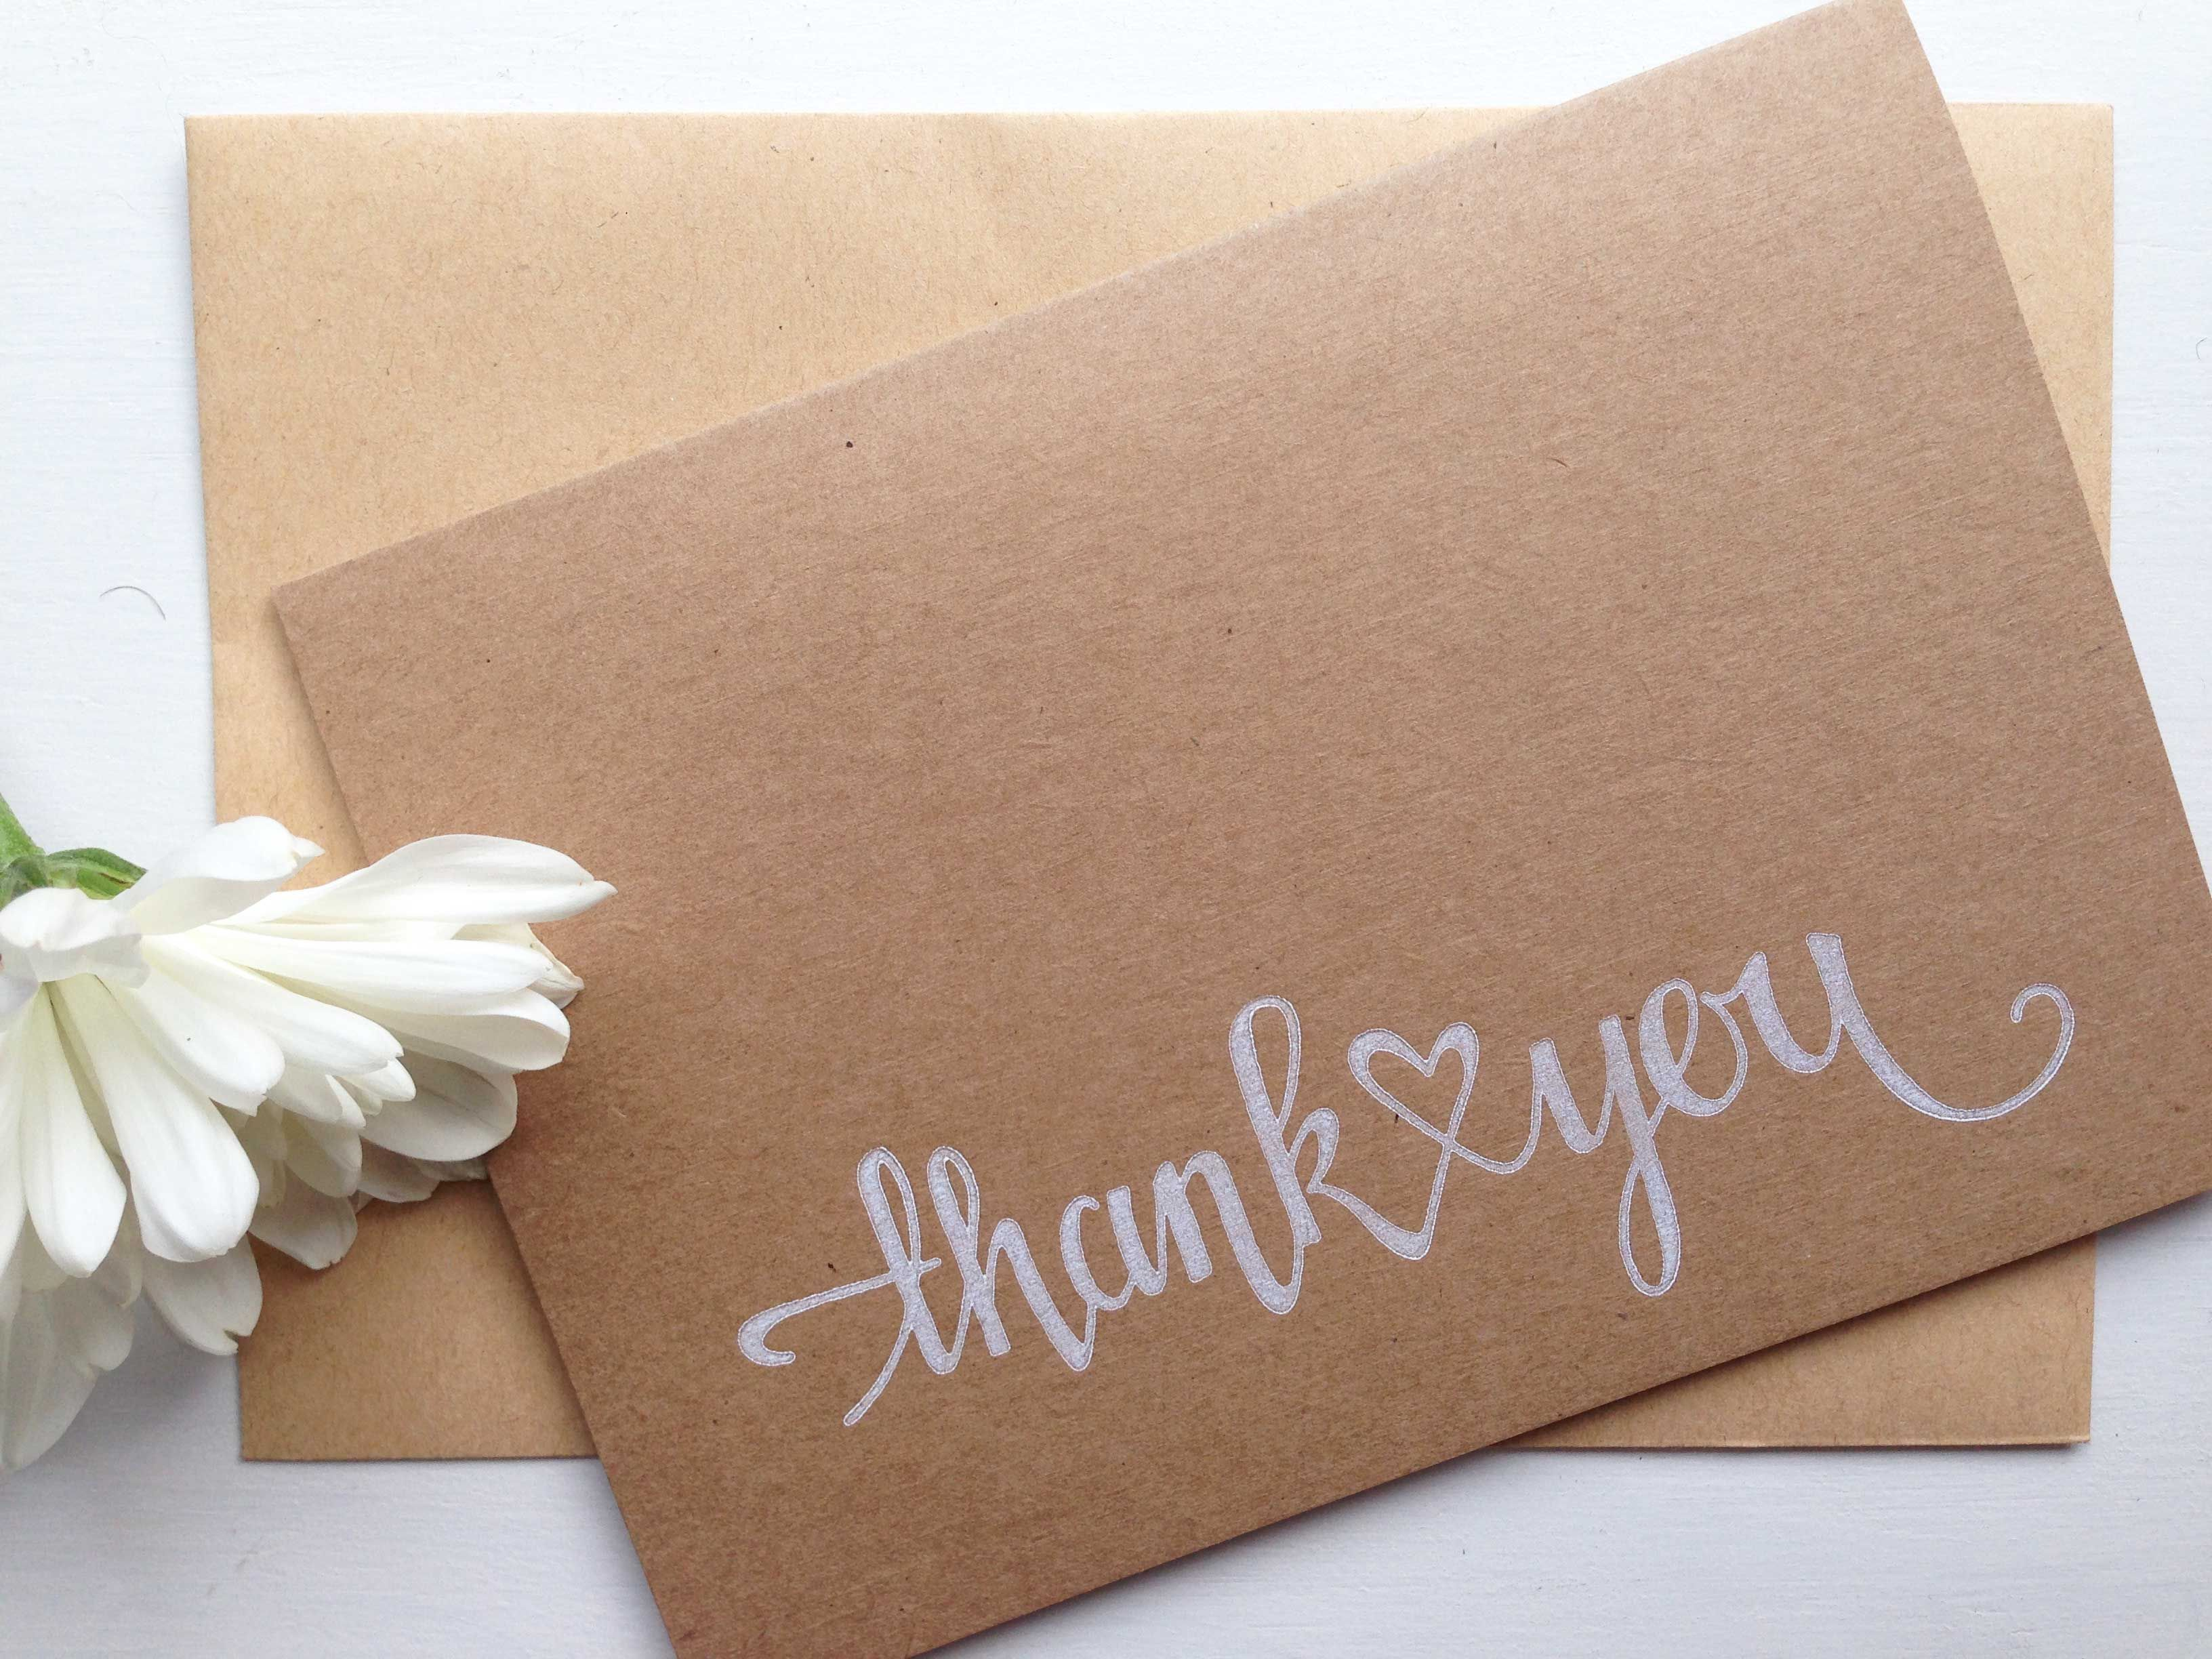 wedding custom thank you cards%0A Arrow Frame FoilPressed Thank You Cards by Lehan Veenker at minted com    lehan veenker design   Personal and Business Stationery   Pinterest